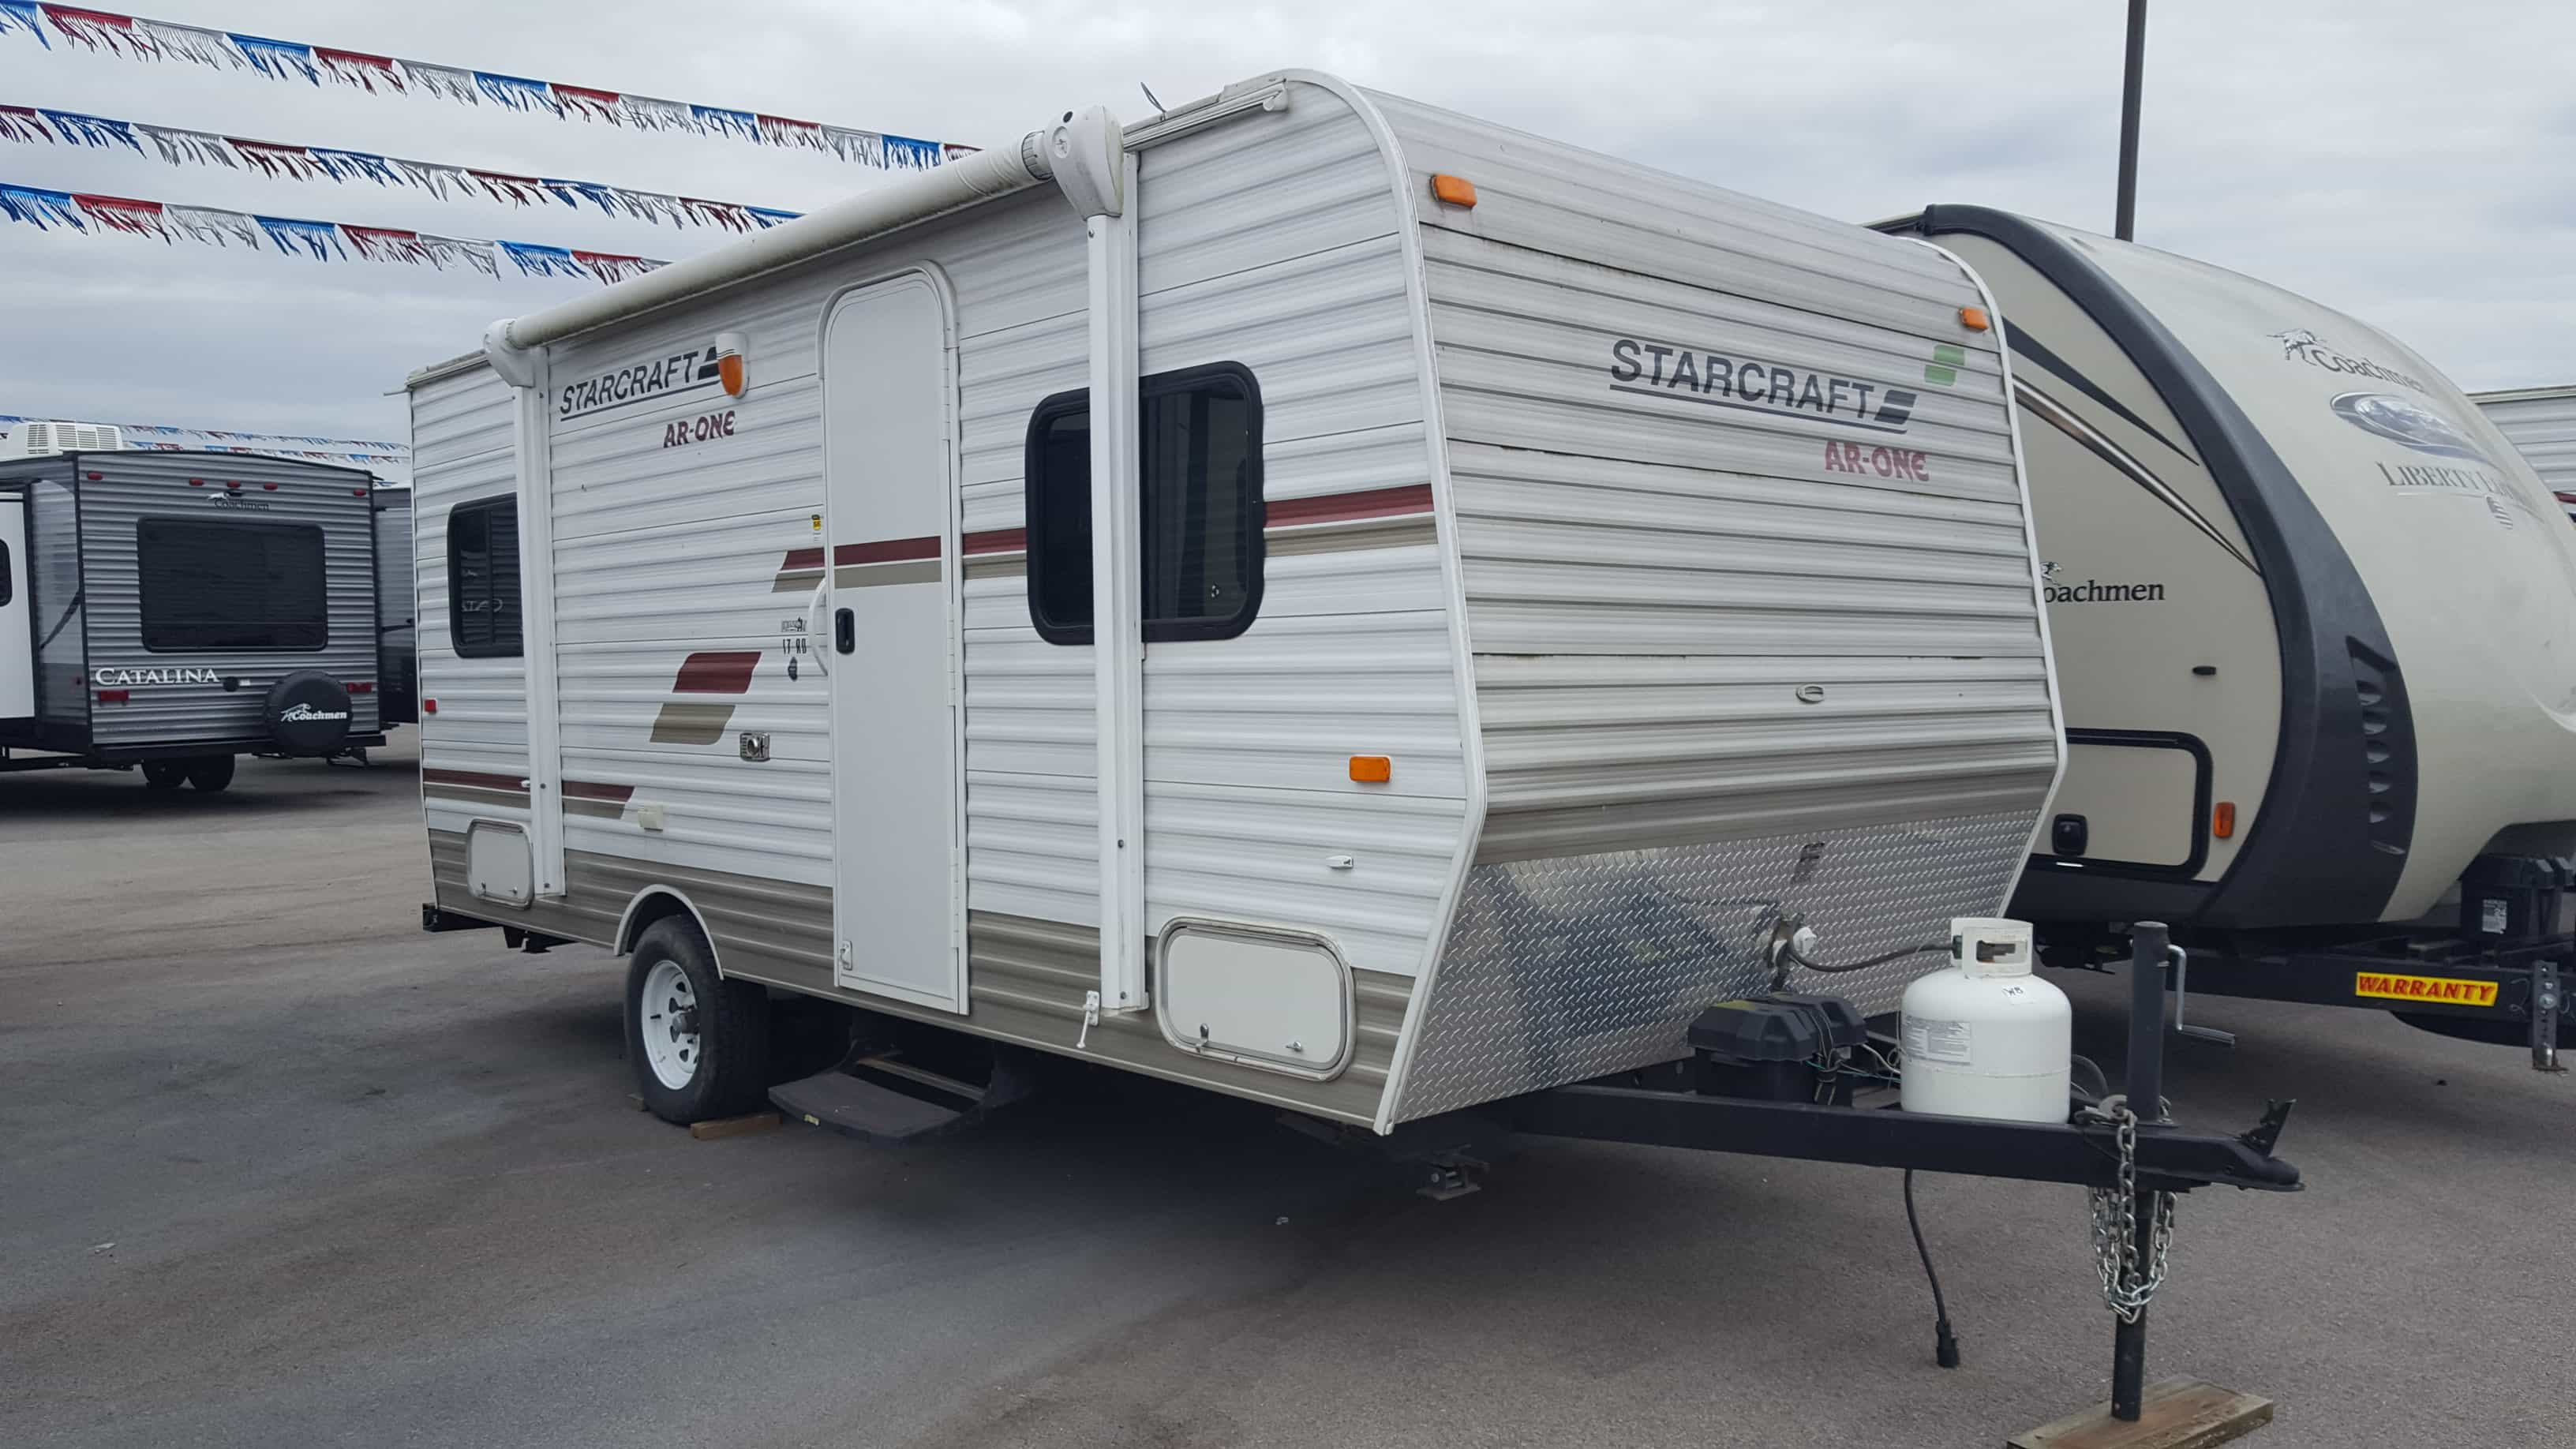 USED 2013 Starcraft AR-ONE 17RD - American RV